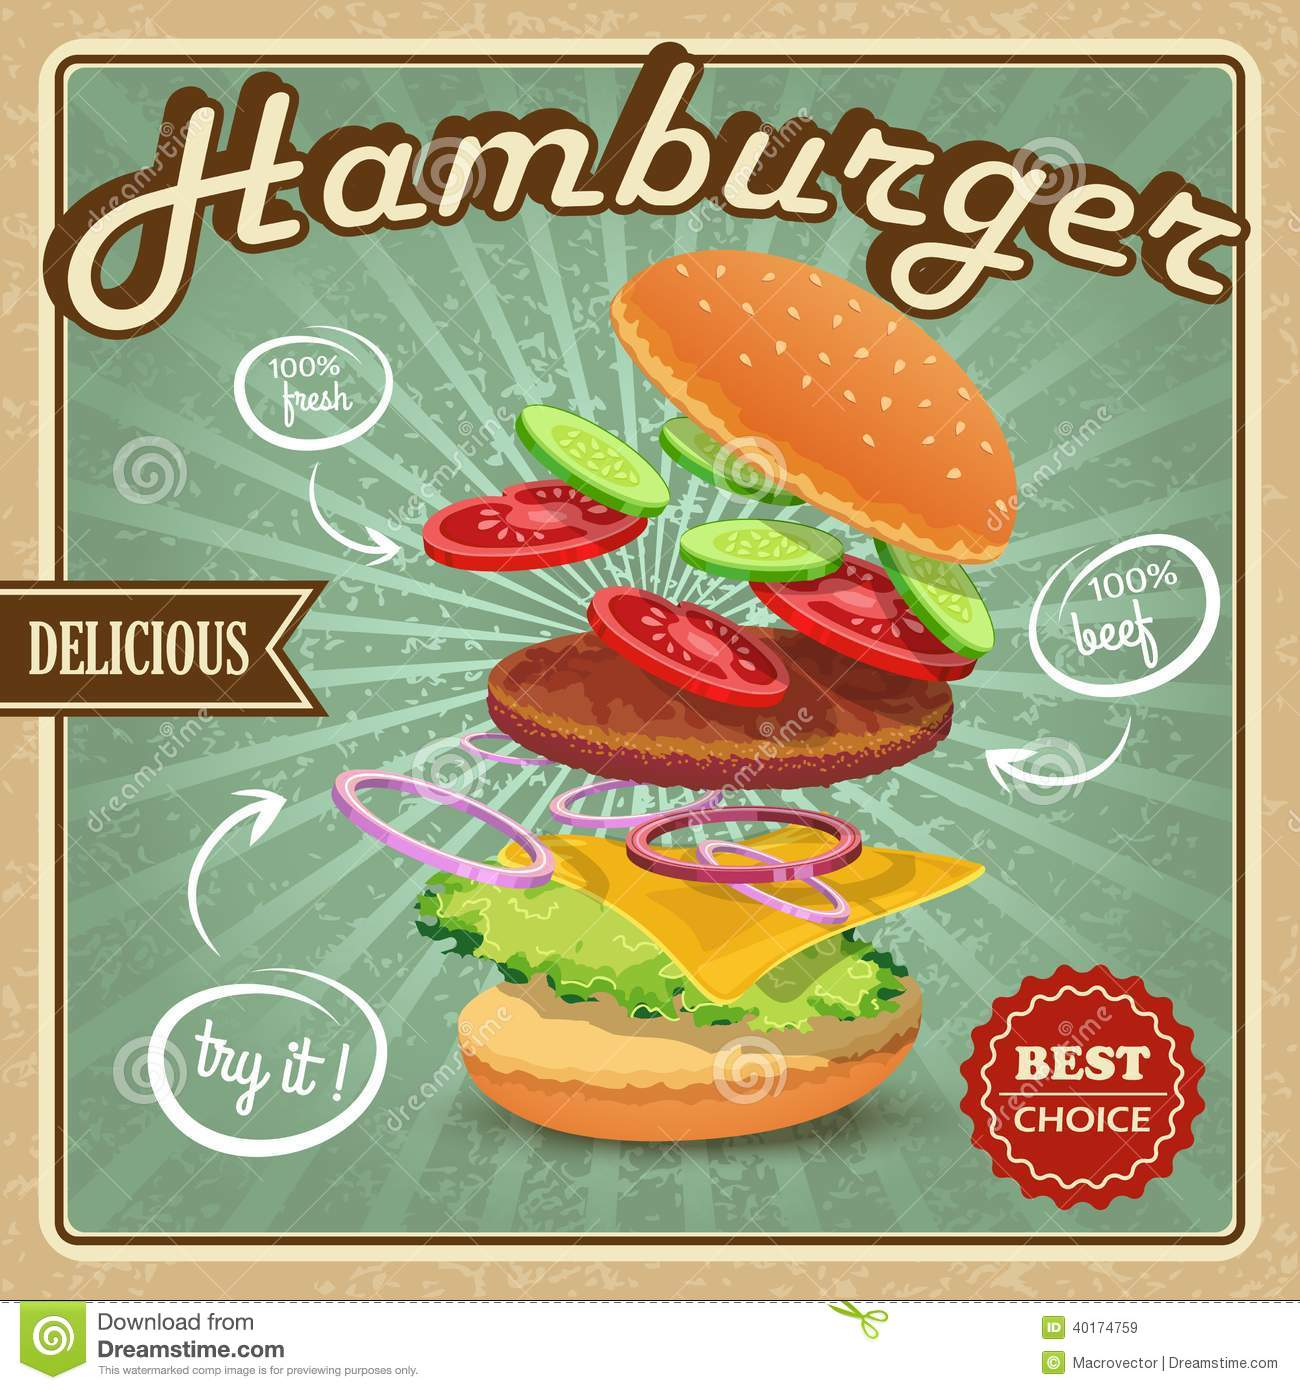 Amerikanische Restaurants Hamburg Hamburger Retro Poster Stock Vector Illustration Of